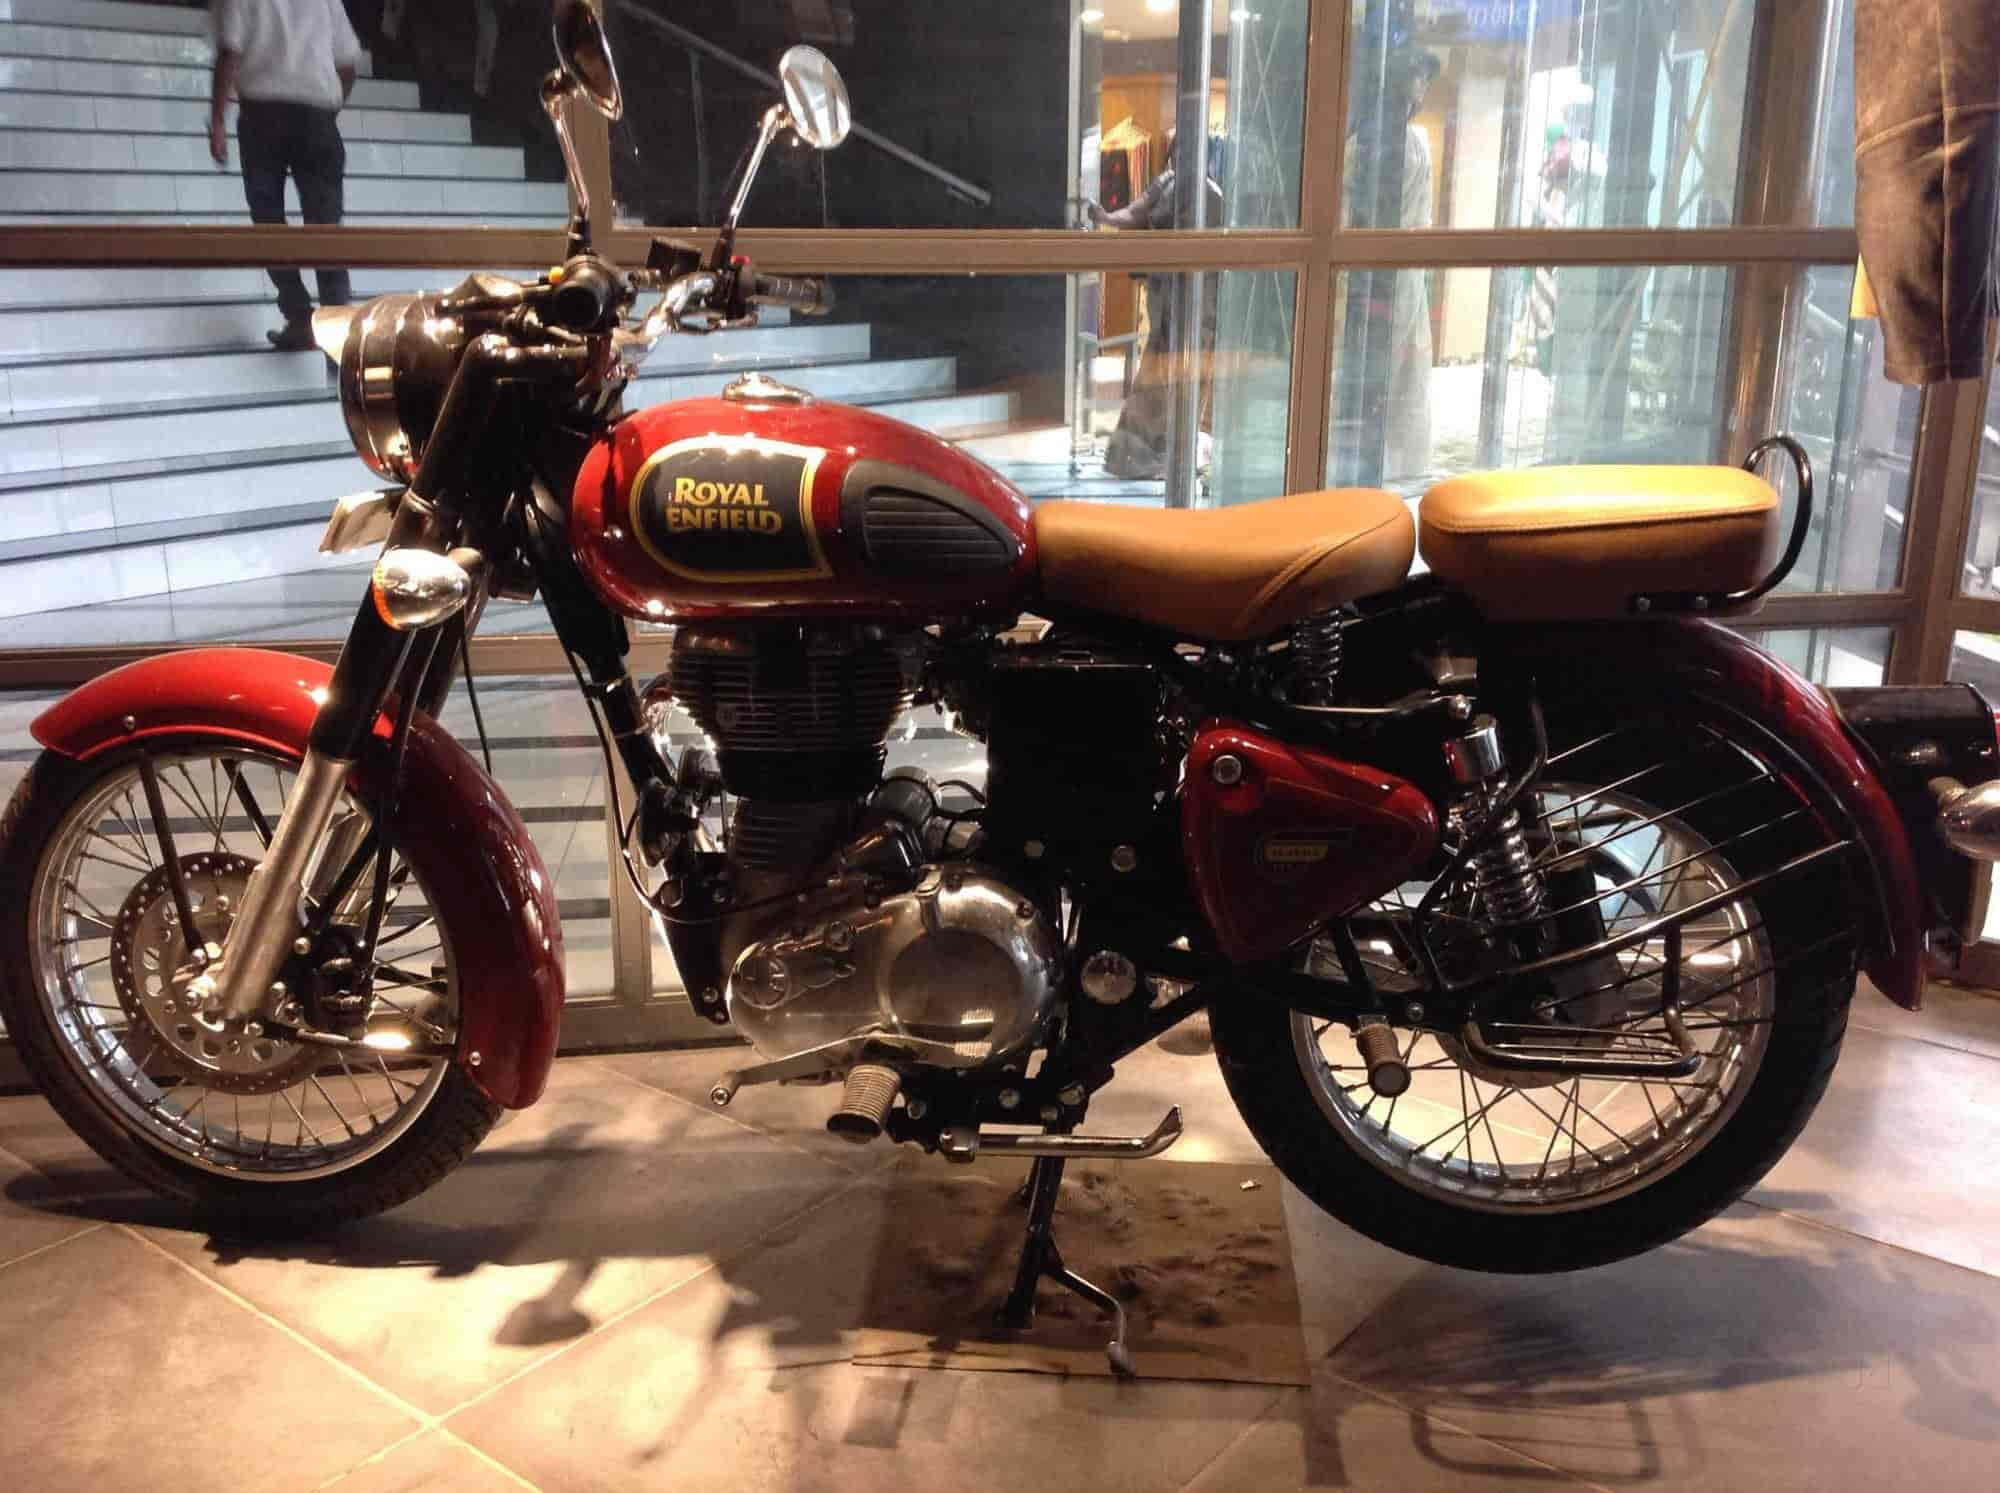 St Marys Motors, Kaloor - Motorcycle Dealers-Royal Enfield in Ernakulam - Justdial